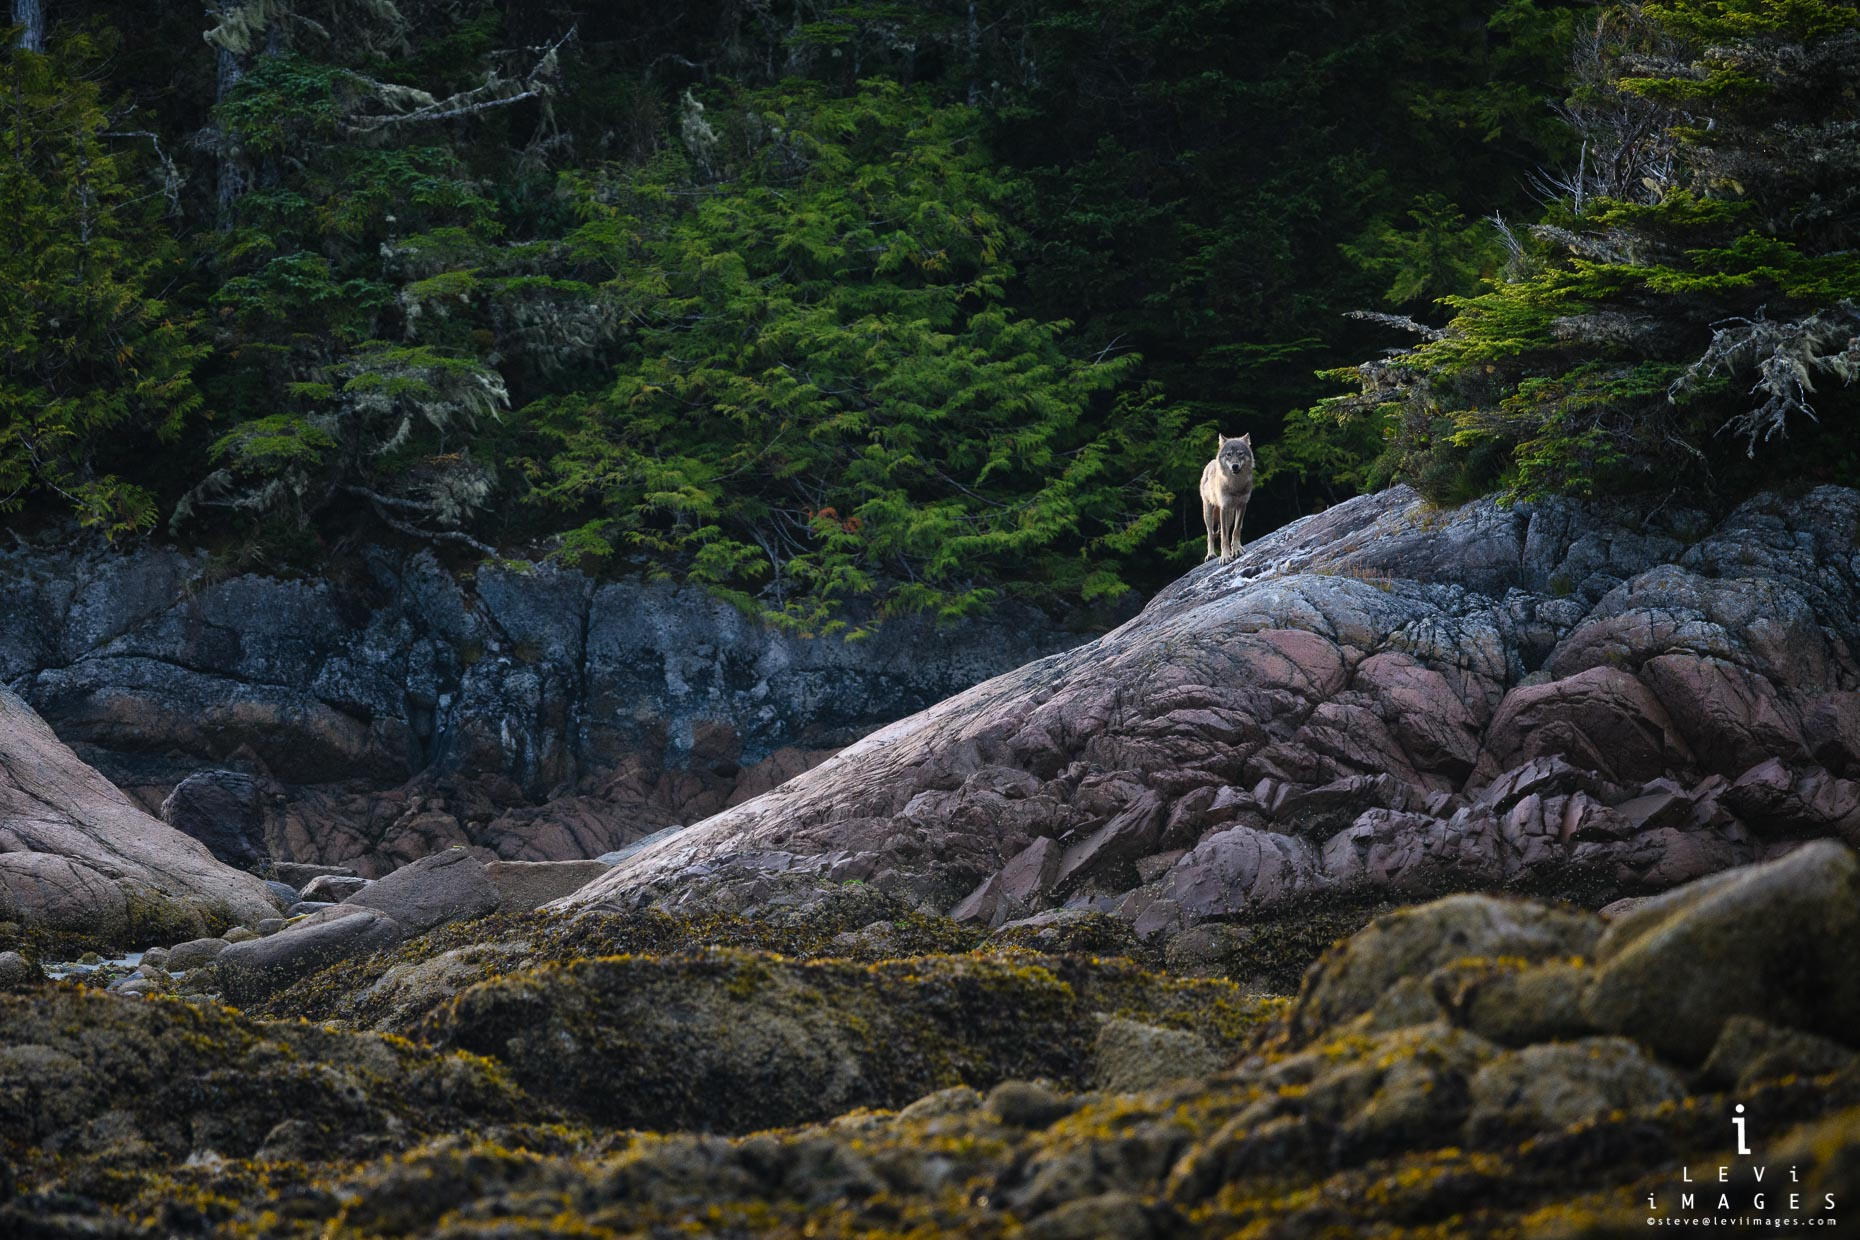 Sea Wolf in the intertidal zone of Great Bear Rainforest